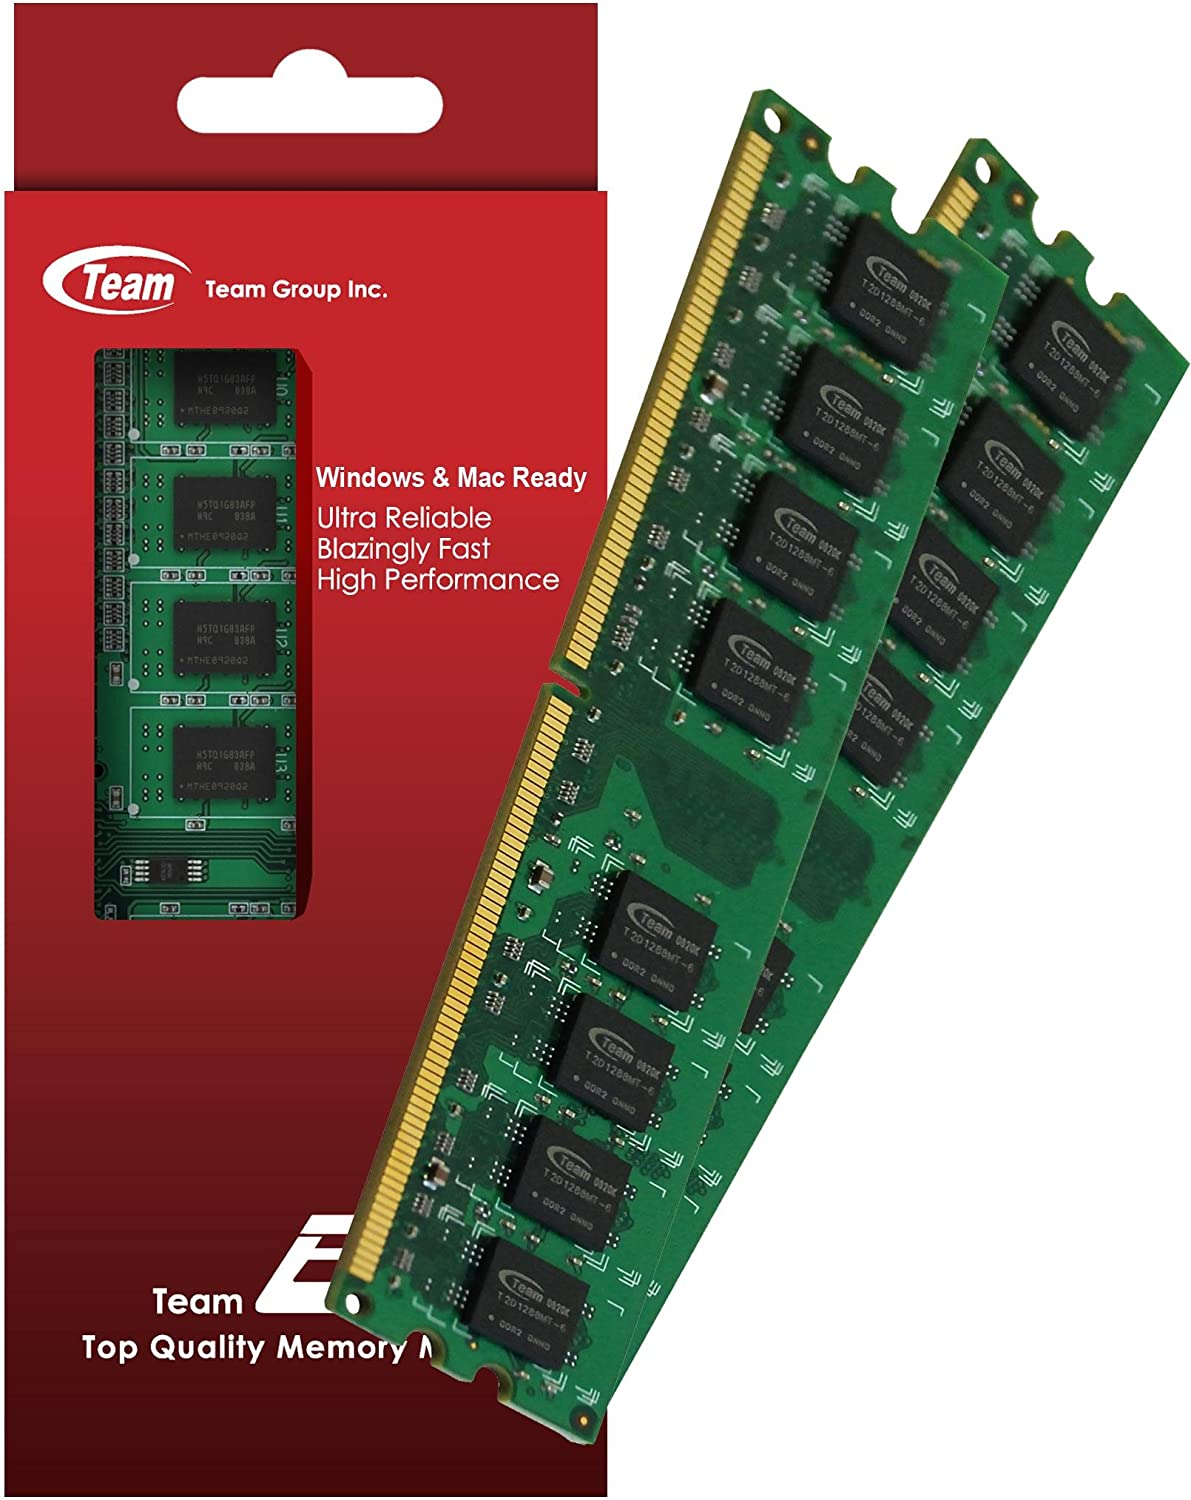 The Memory Kit comes with Life Time Warranty. 4GB Team High Performance Memory RAM Upgrade Single Stick For Sony VAIO VPCL13S1E//S VPCL111FX//BVPCL113FX Desktop